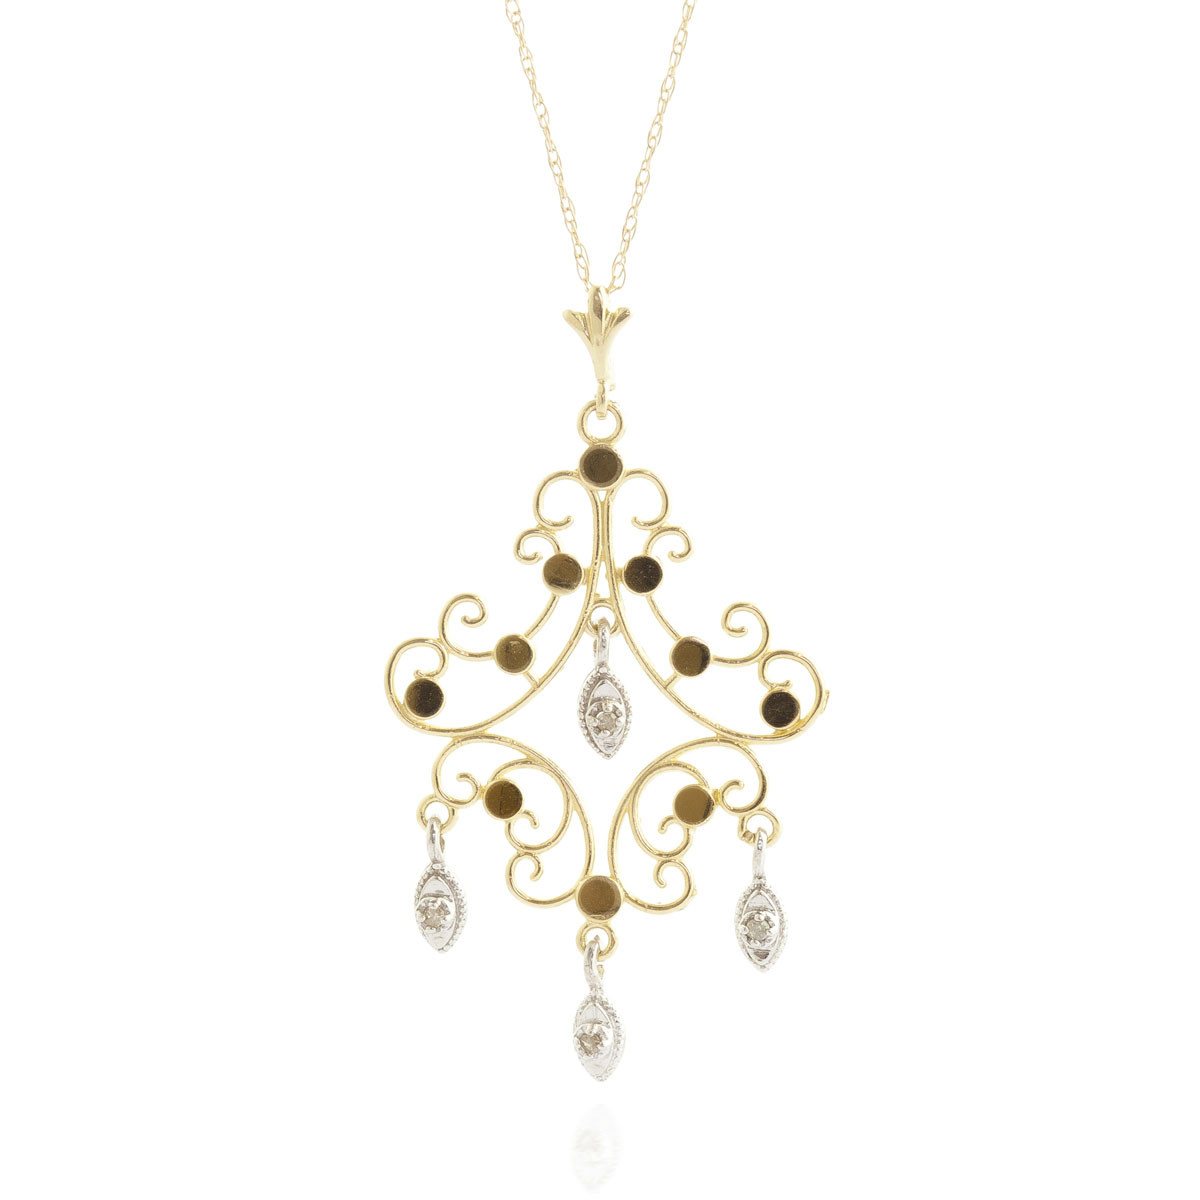 Round Cut Diamond Pendant Necklace 0.02 ctw in 9ct Gold